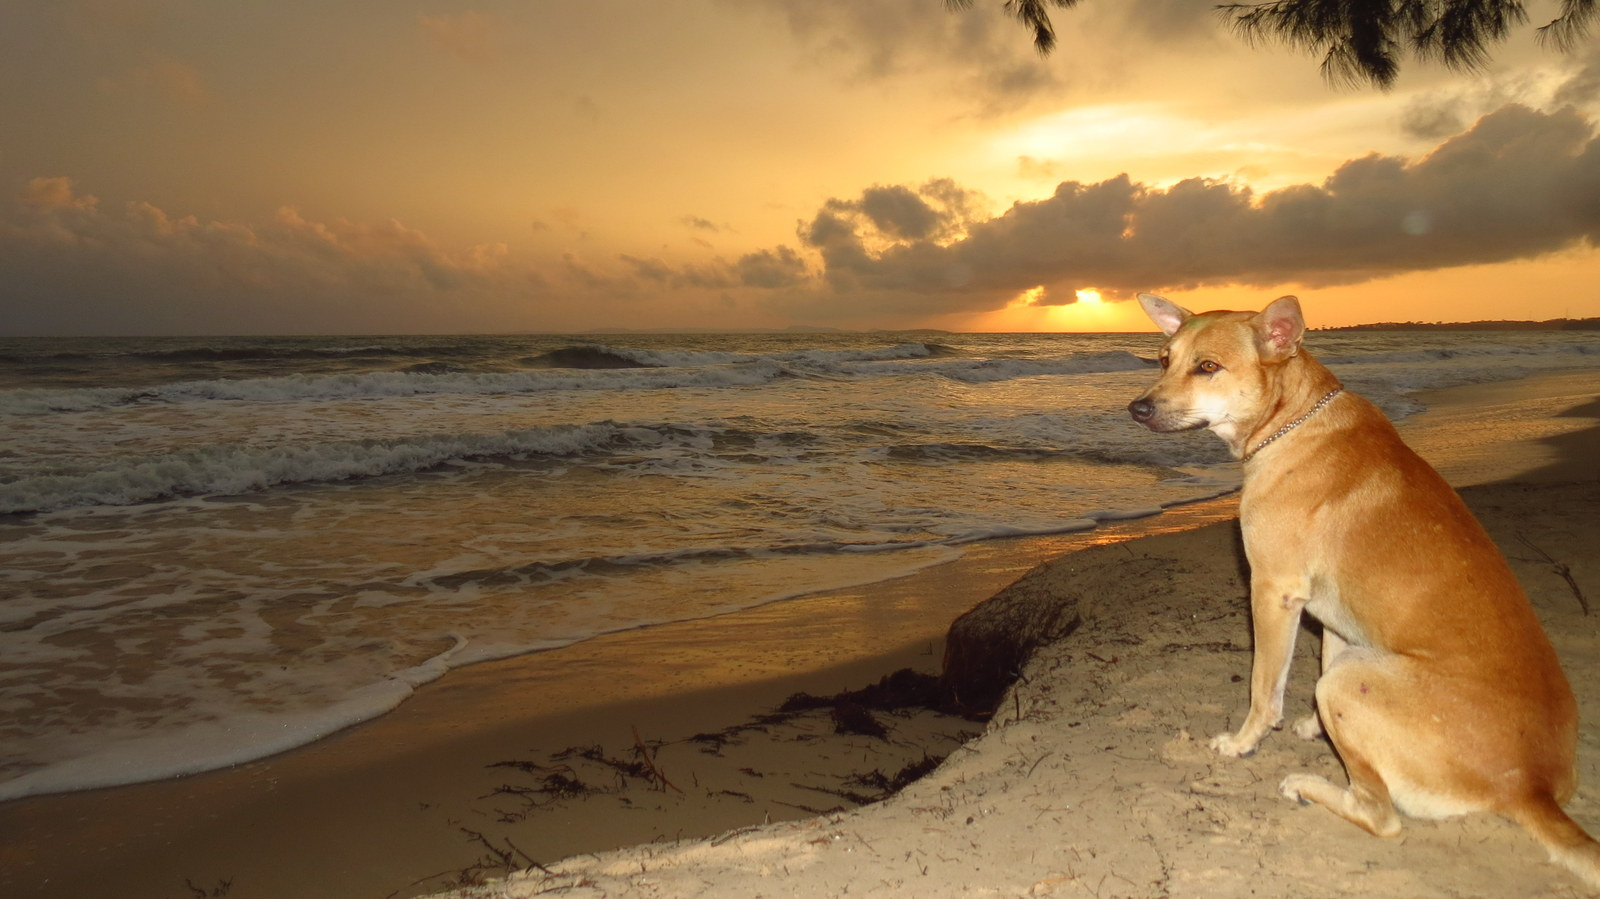 Otres sunset and dog